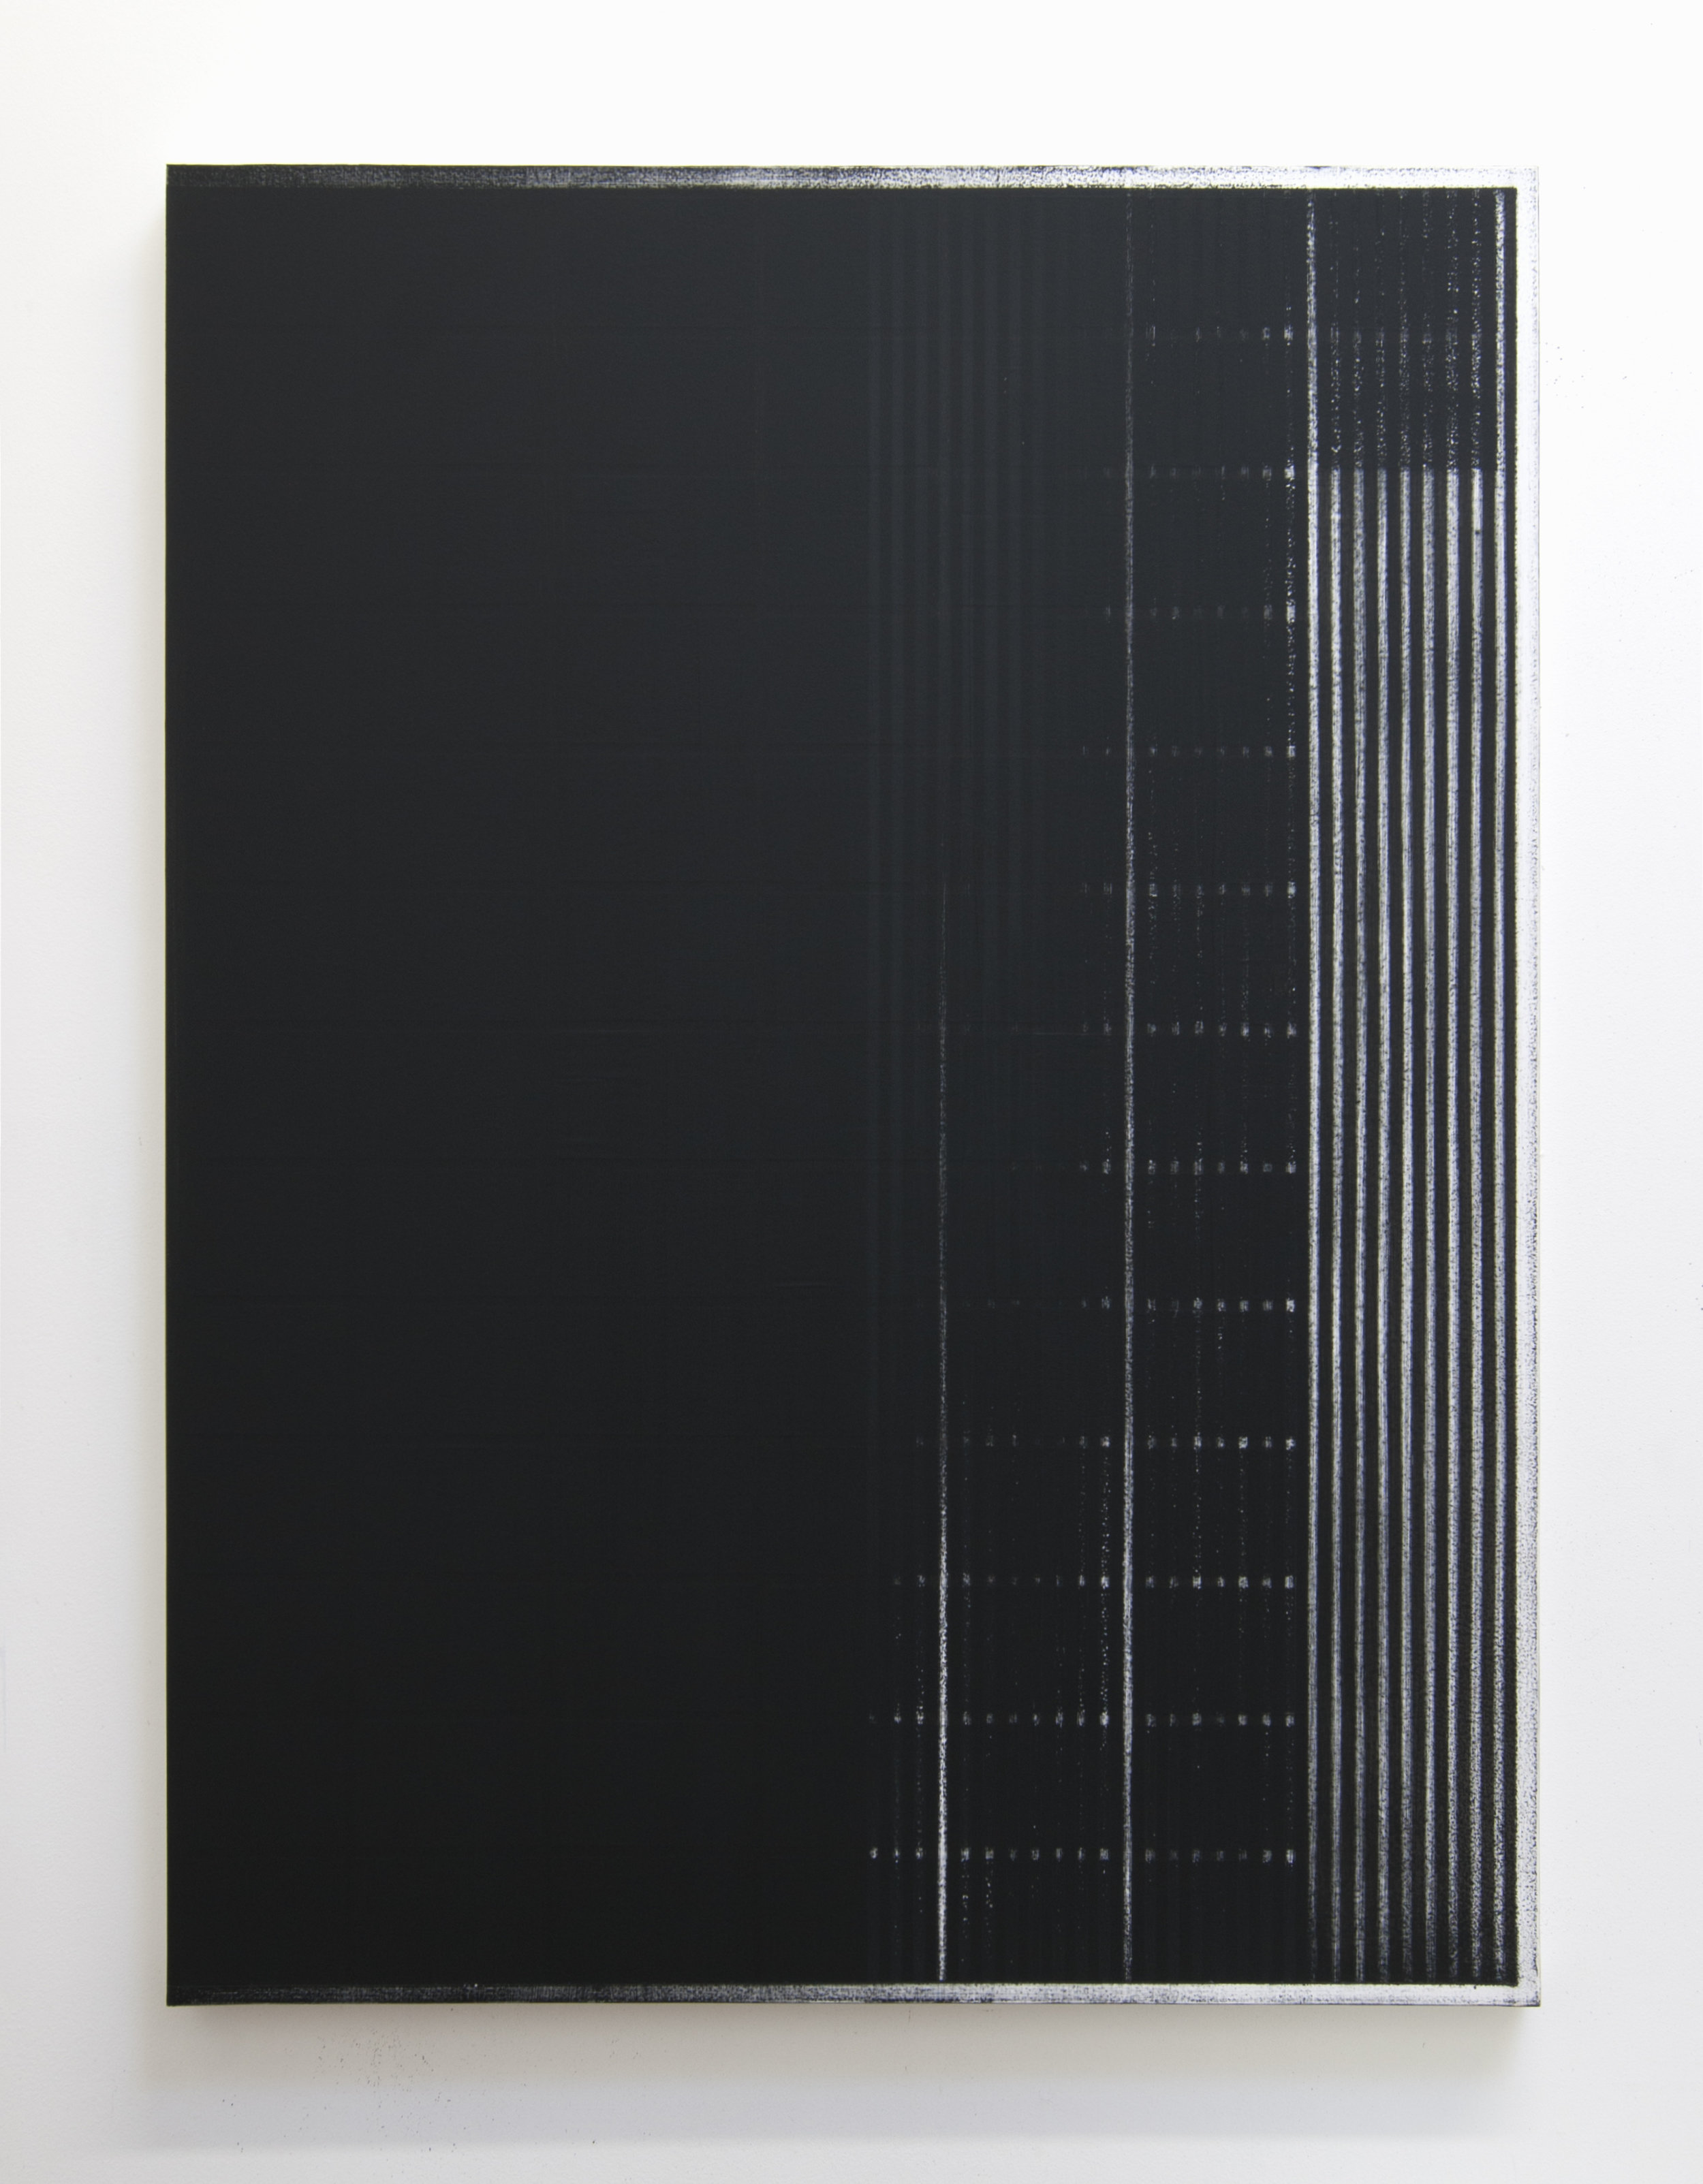 RK8L11, 2015  Acrylic on panel, 40 x 30 inches